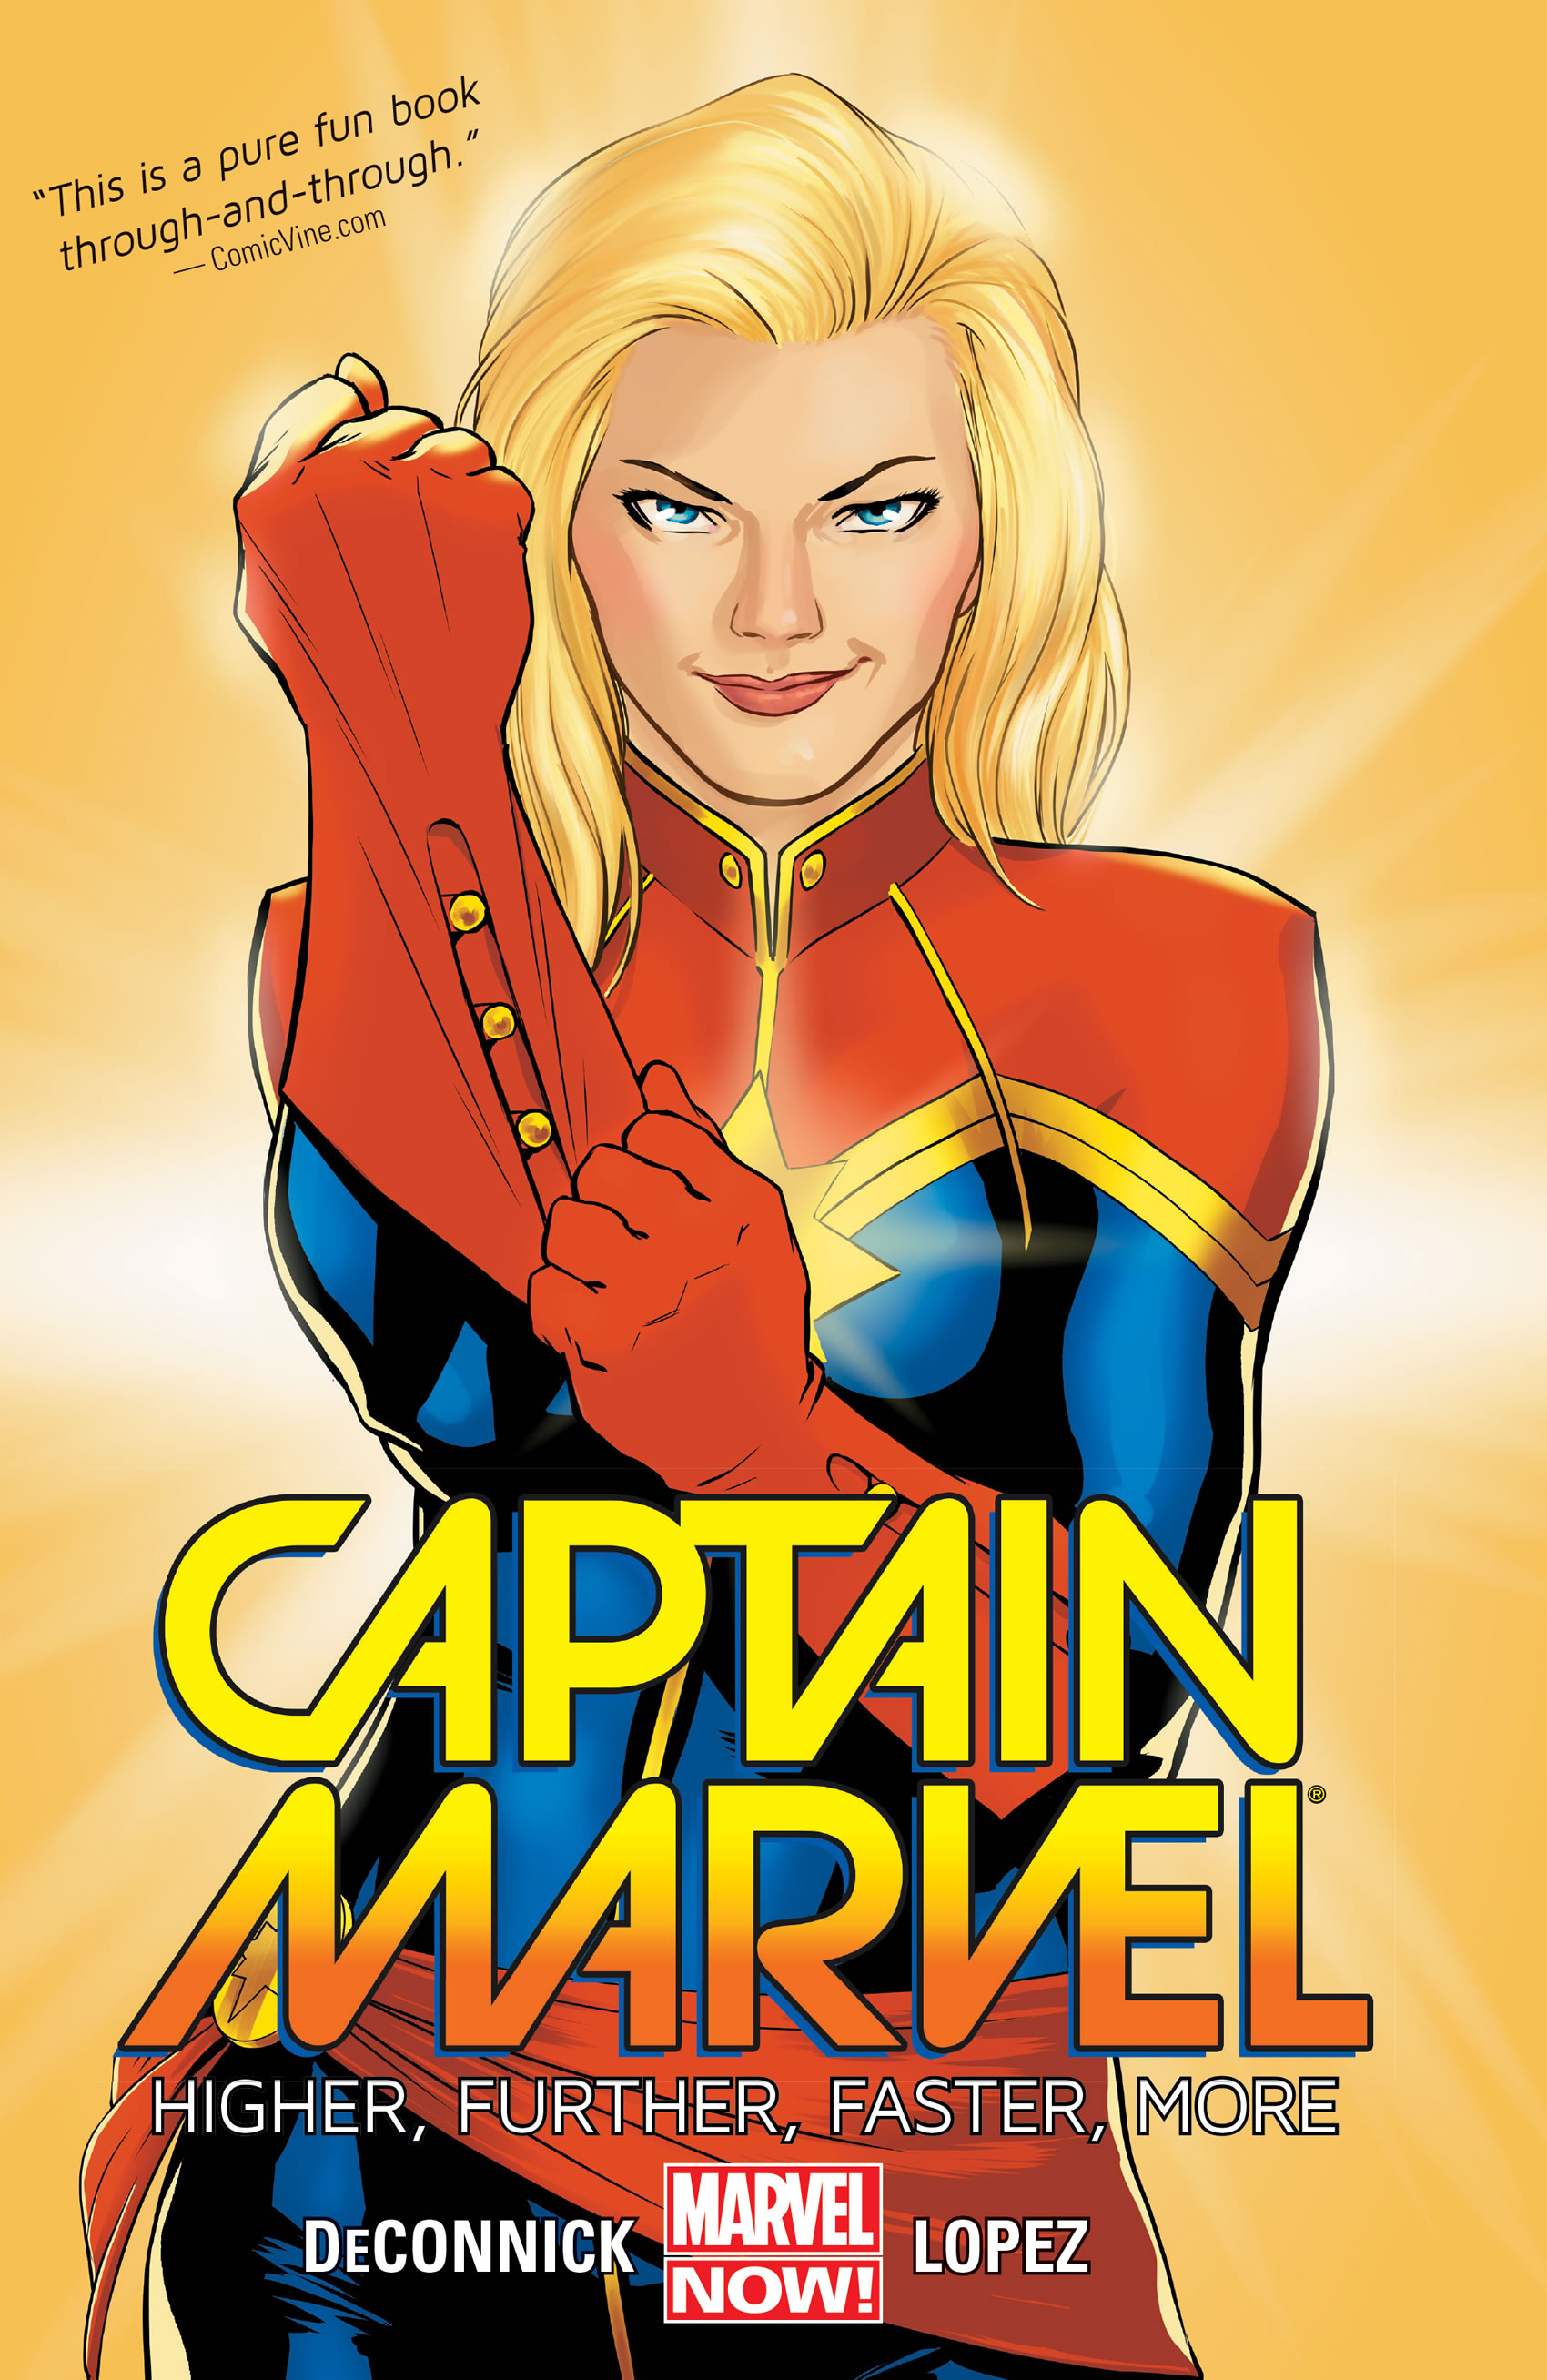 Captain Marvel - not your average superhero career! Image Credit: Marvel Entertainment, LLC